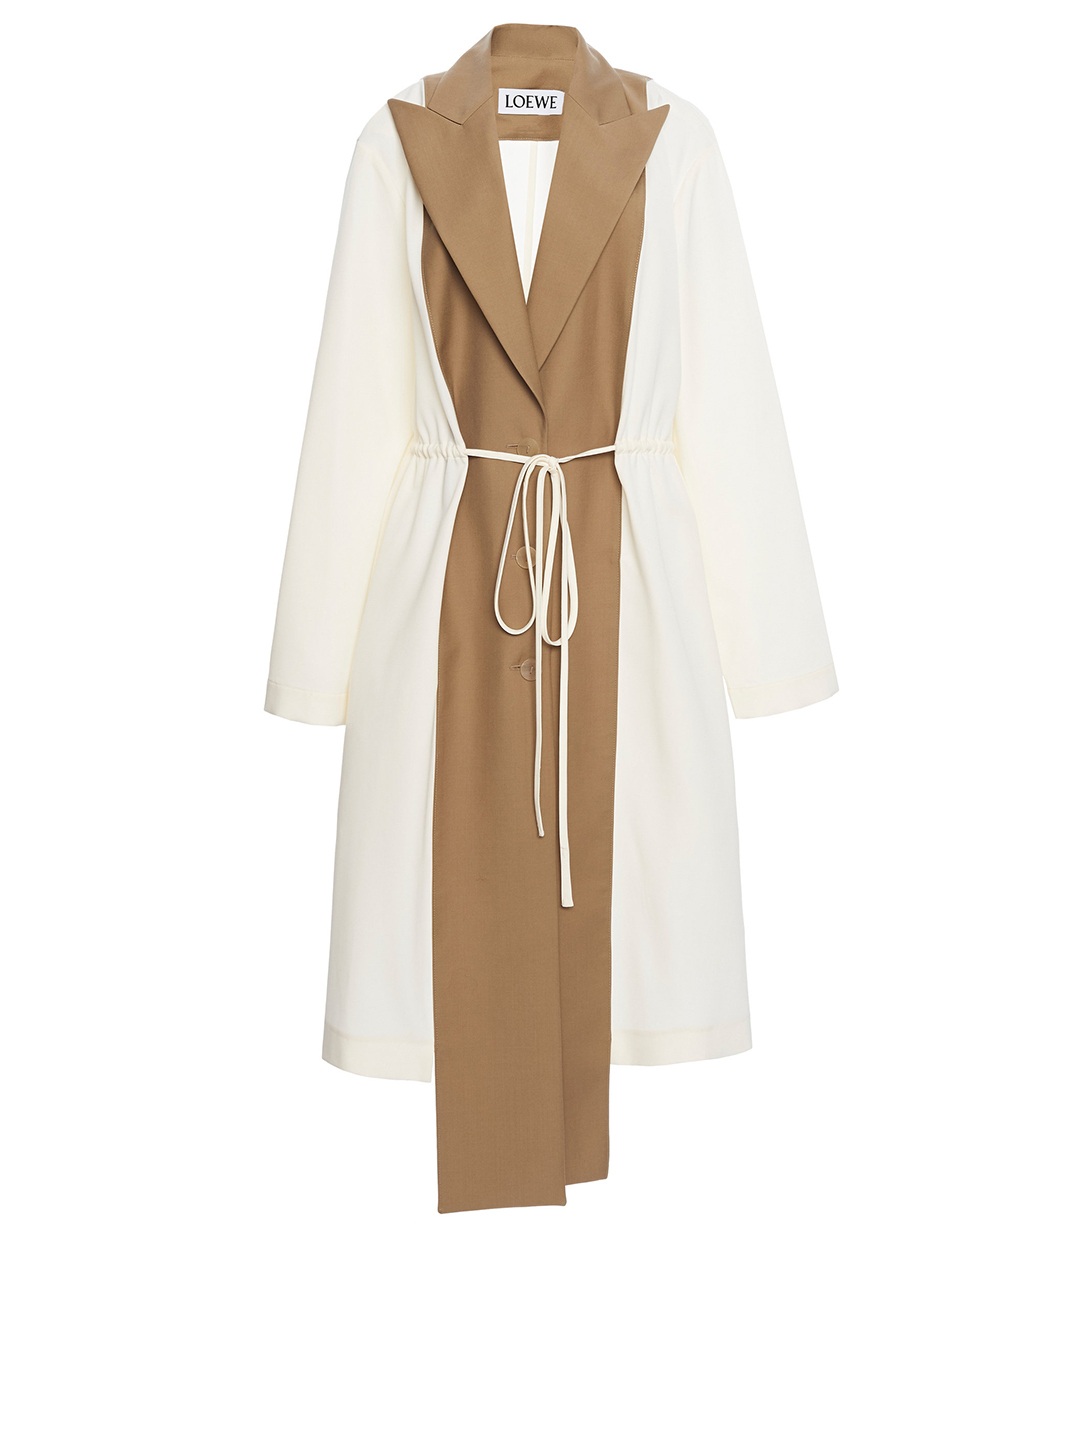 LOEWE Wool Paneled Trench Coat Women's Beige